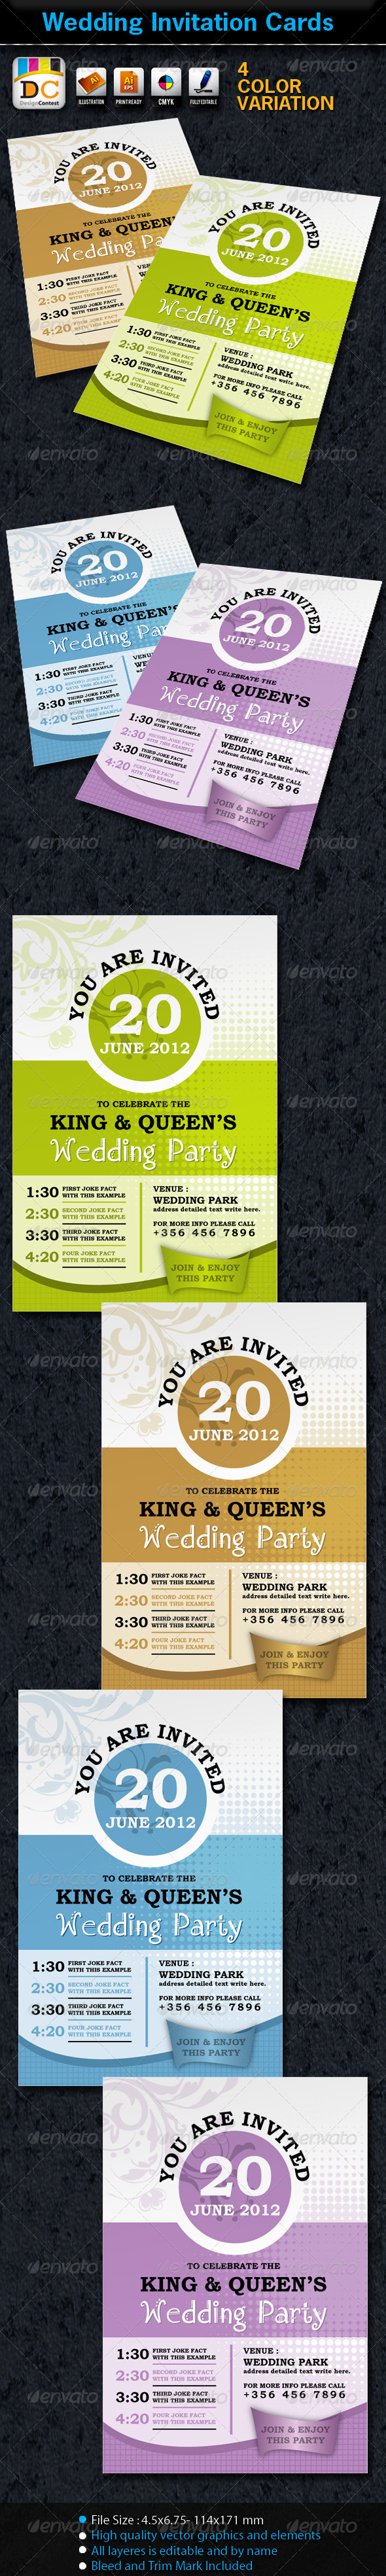 Wedding/Marriage Invitation Card Sets - Invitations Cards &amp; Invites